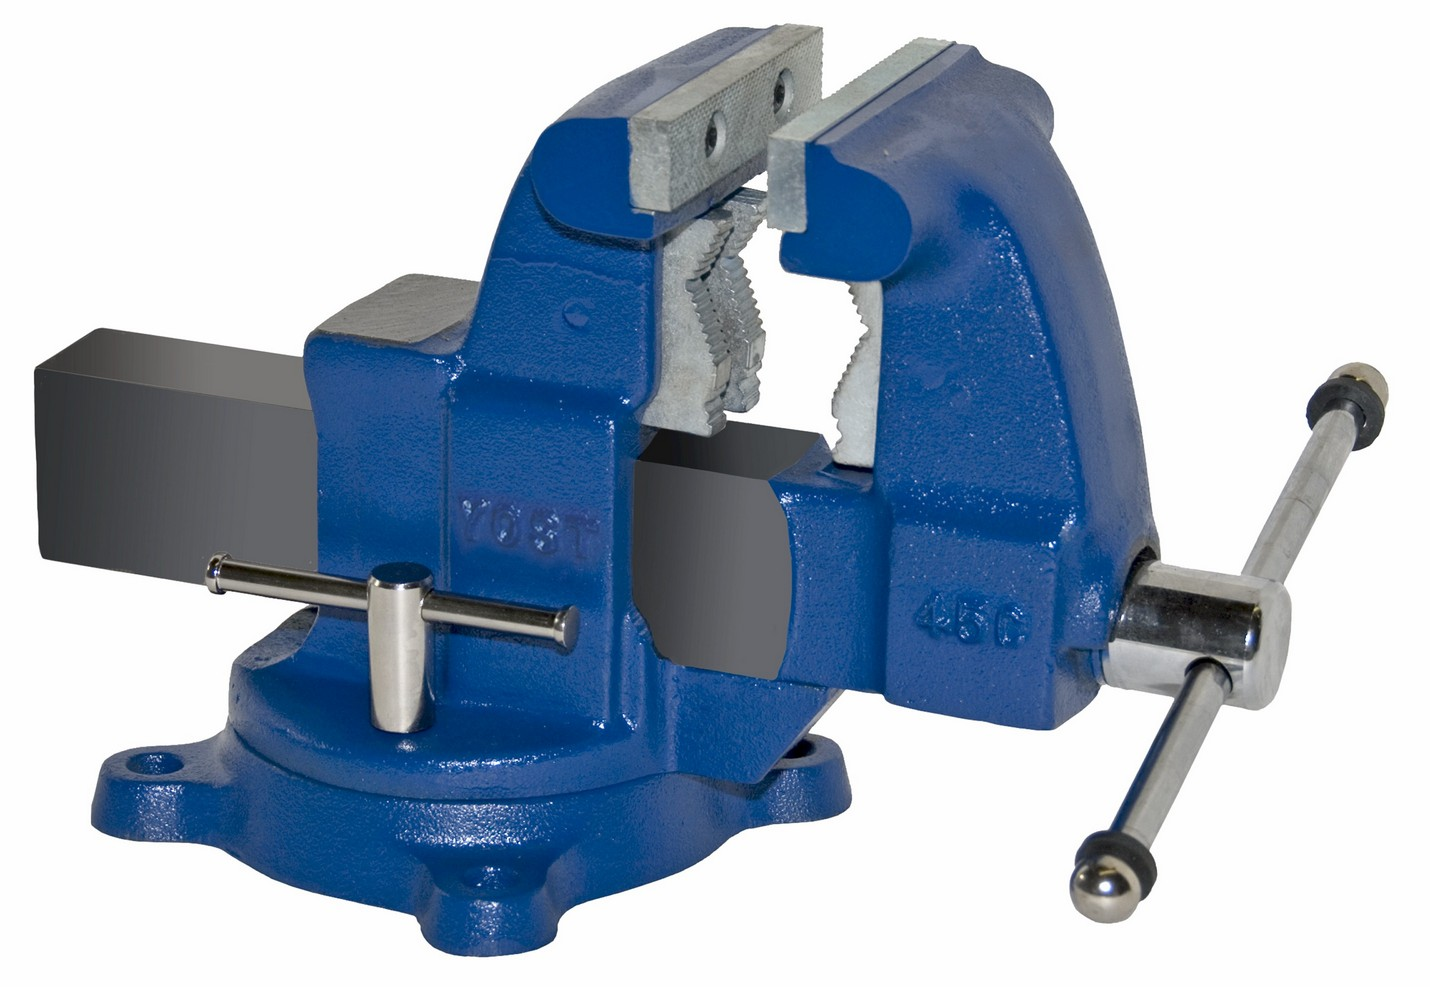 Yost Vises 45c 4 1 2 Tradesman Combination Pipe Bench Vise Swivel Base